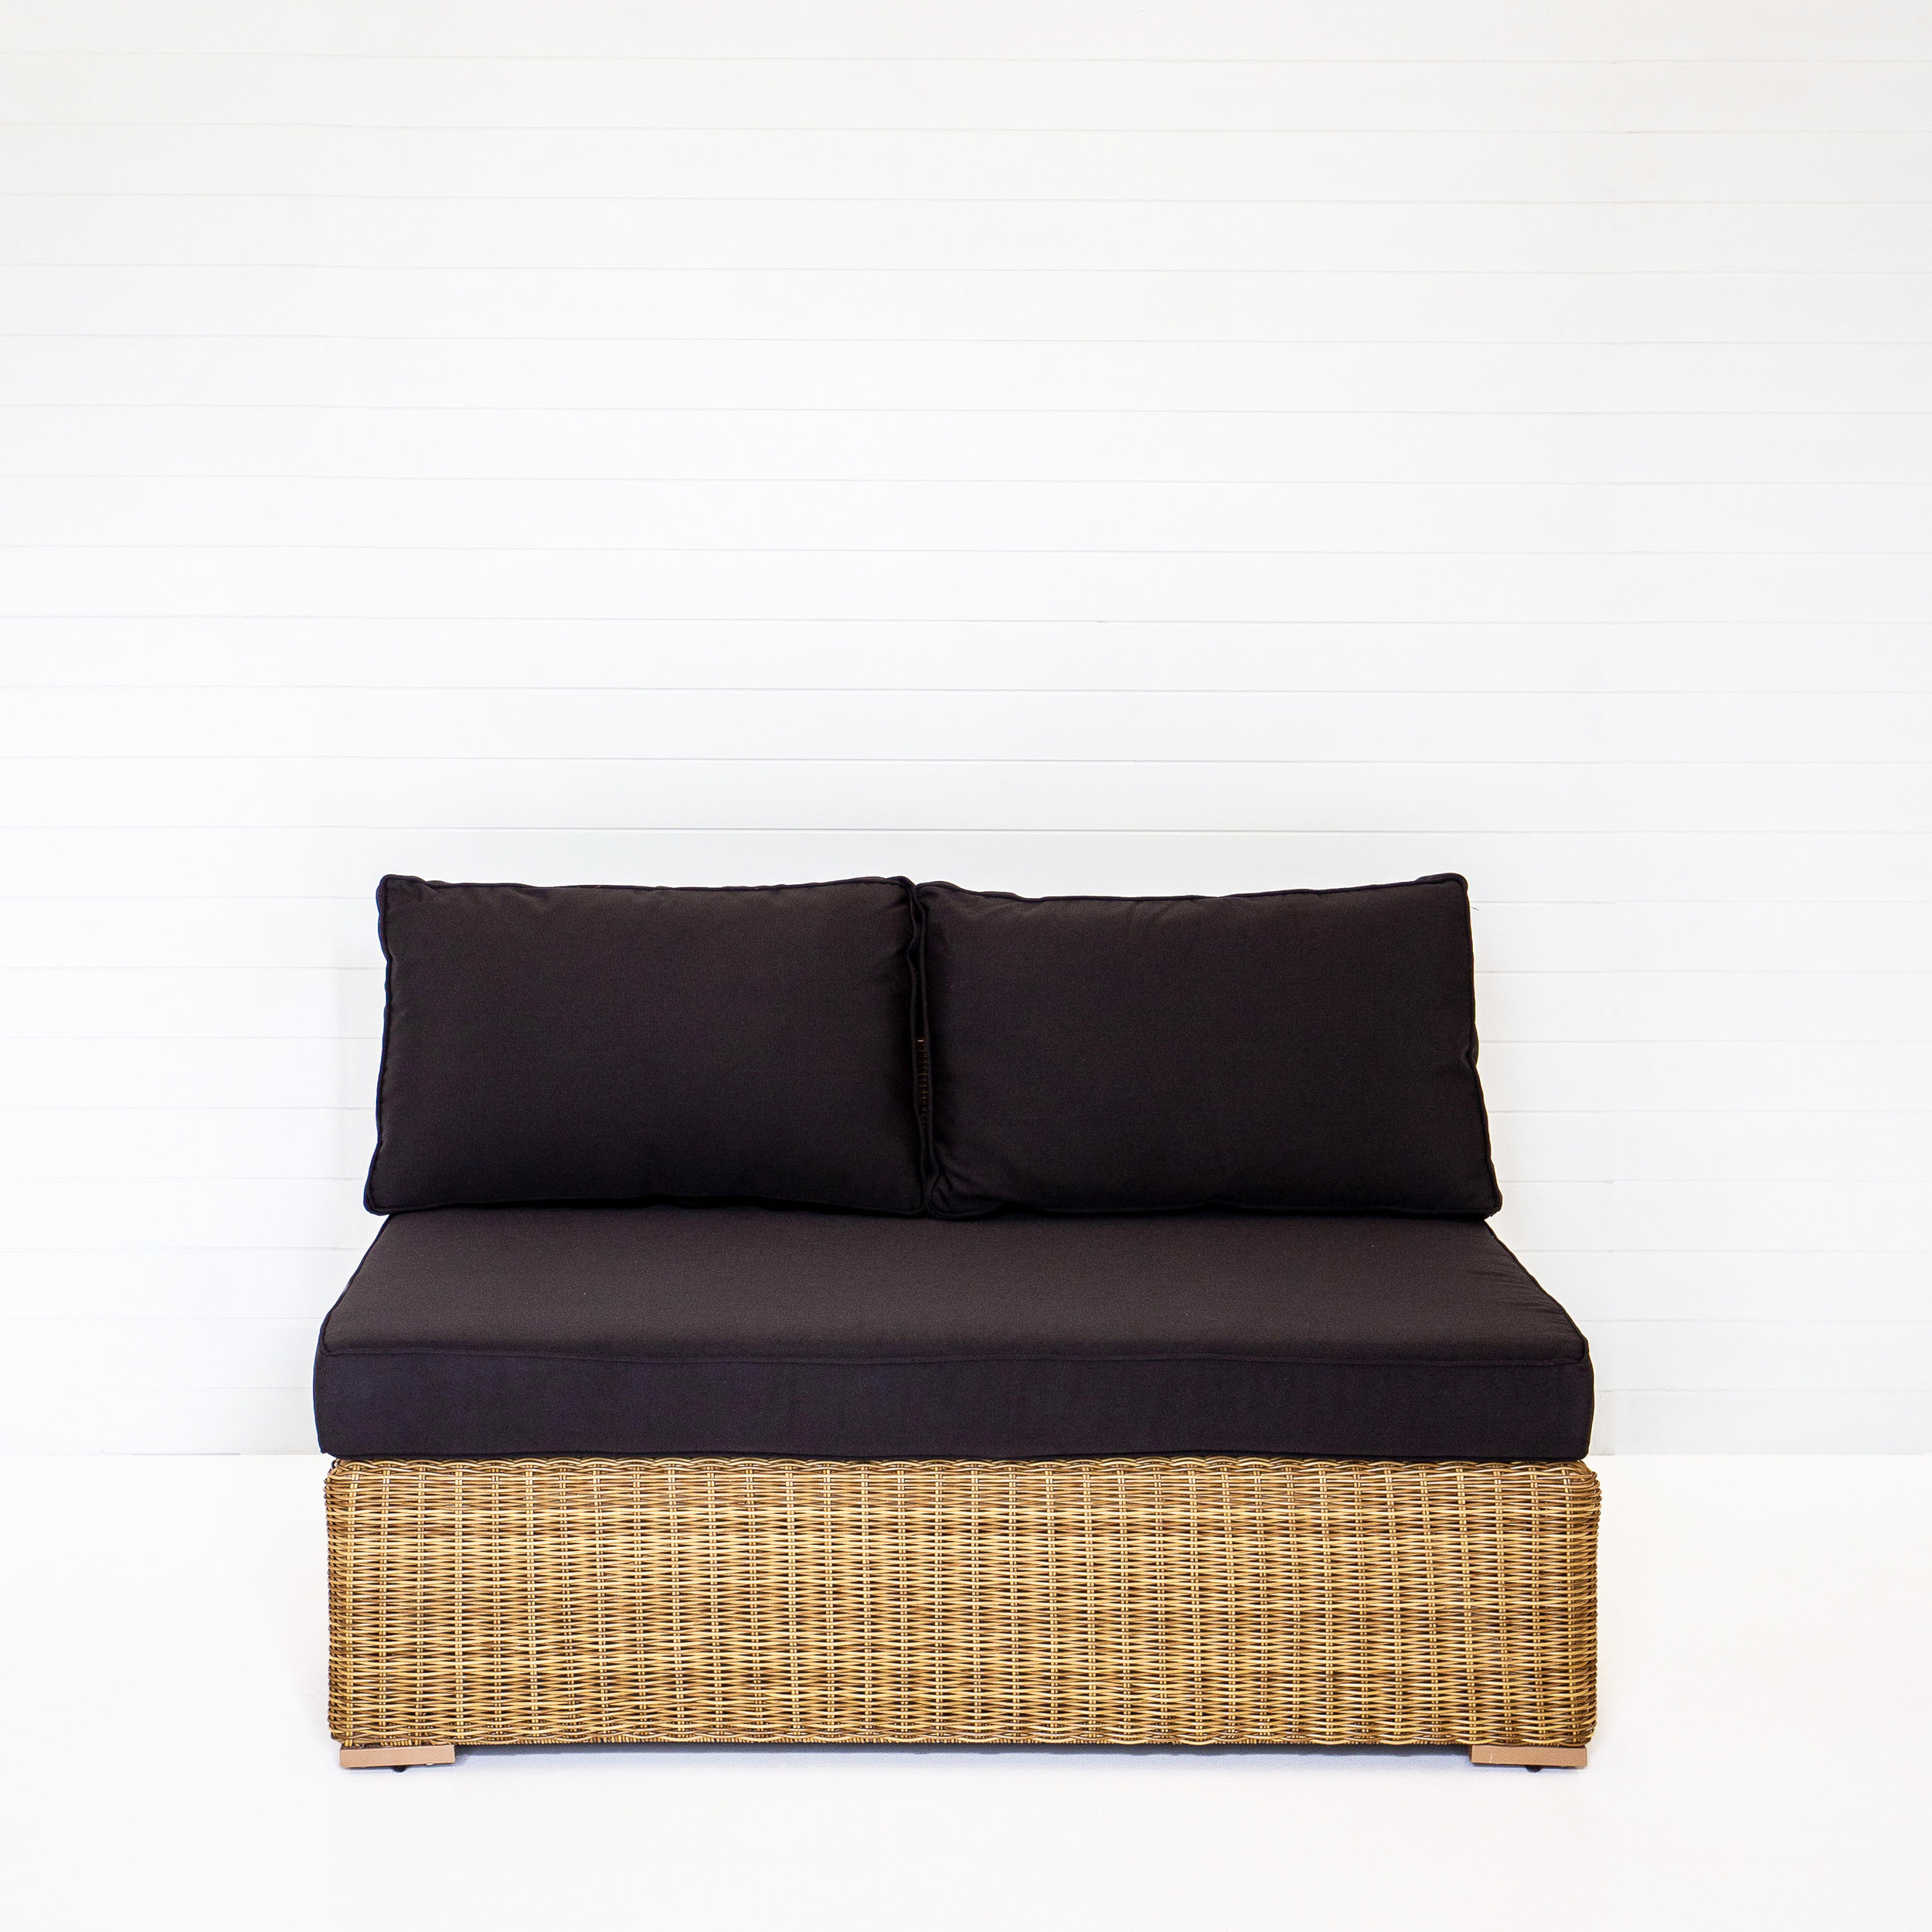 Dune Two Seater Modular Sofa (No-Arms) With Black Cushions